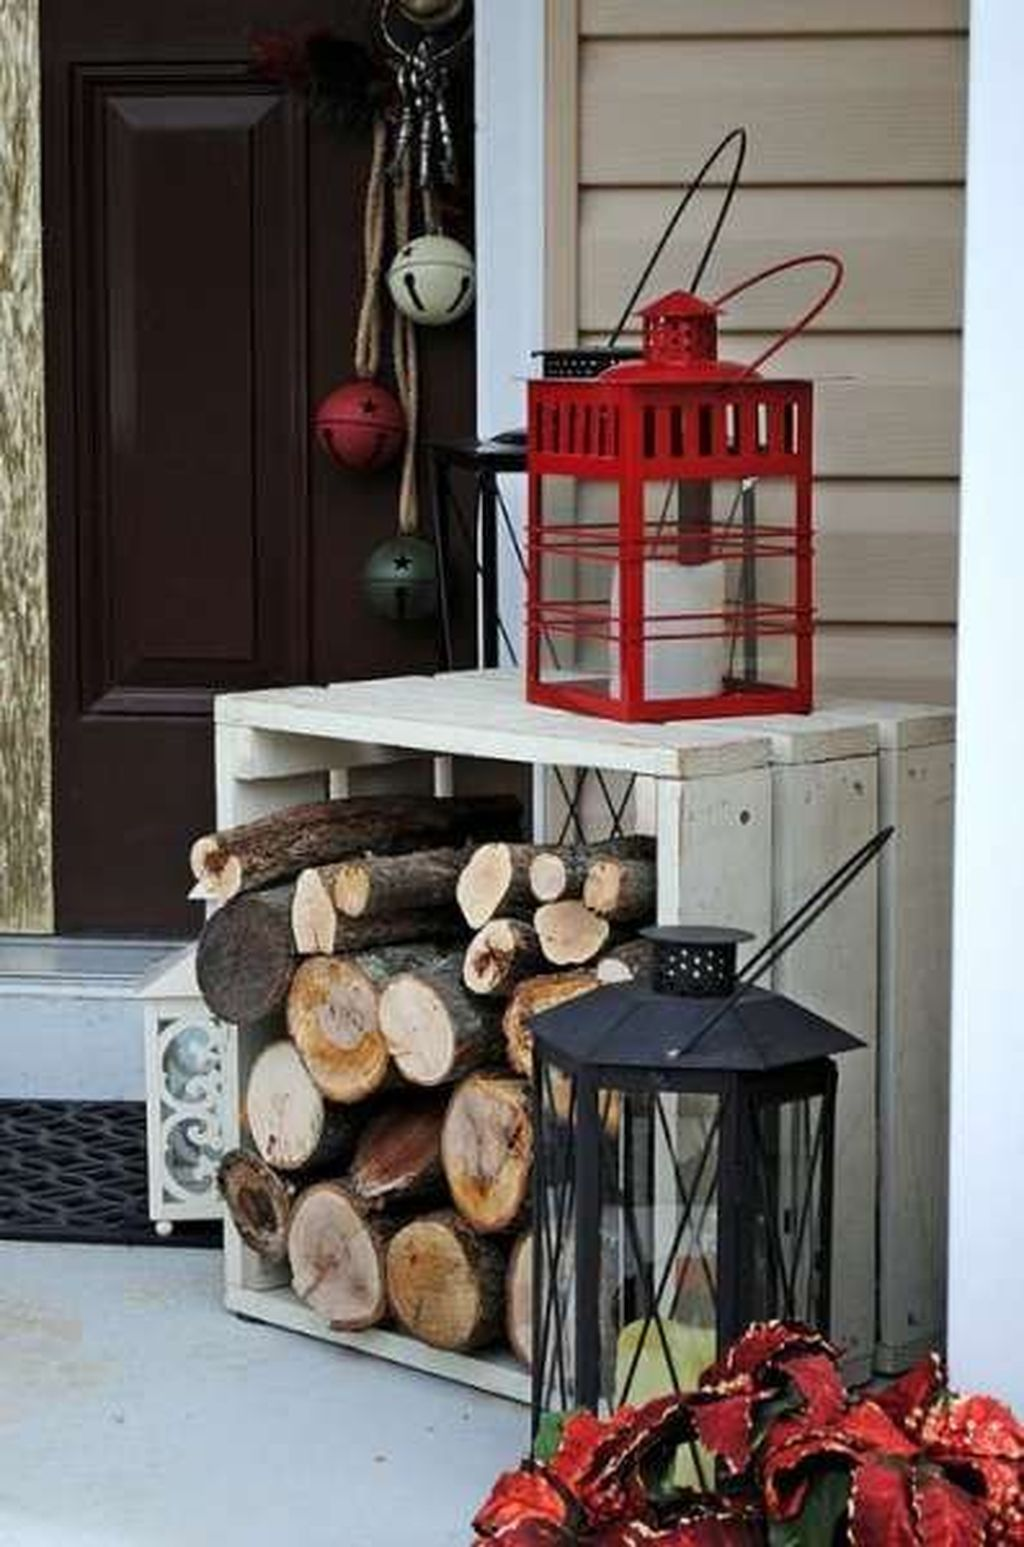 The Best Christmas Lanterns Outdoor Ideas Best For Front Porches 10